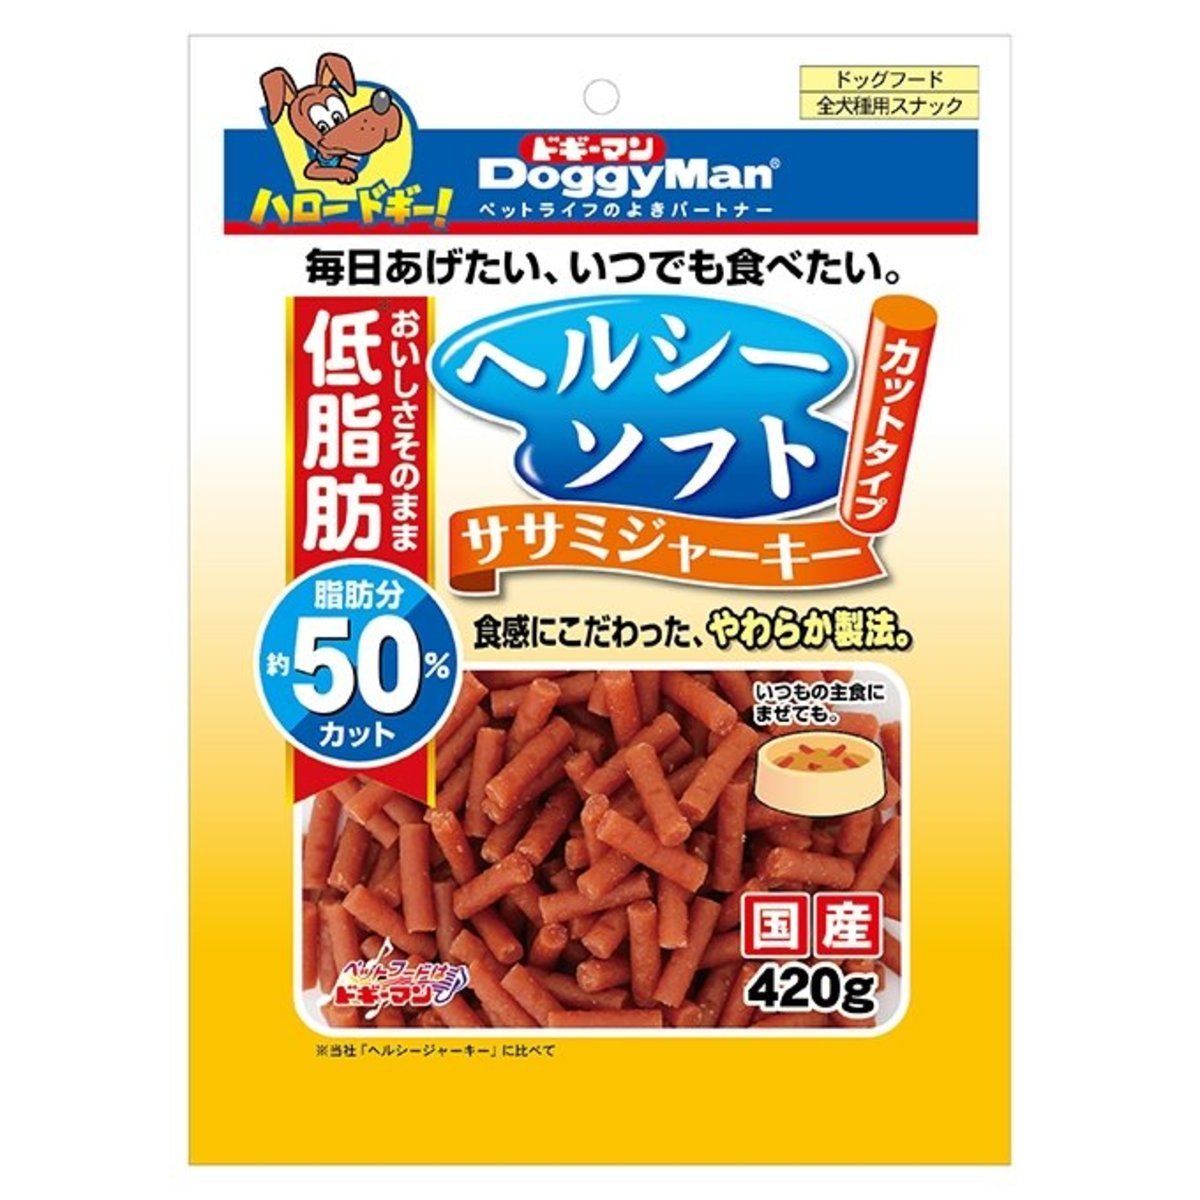 Healthy Soft Sasami Jerky Cut (420g) #81958 R